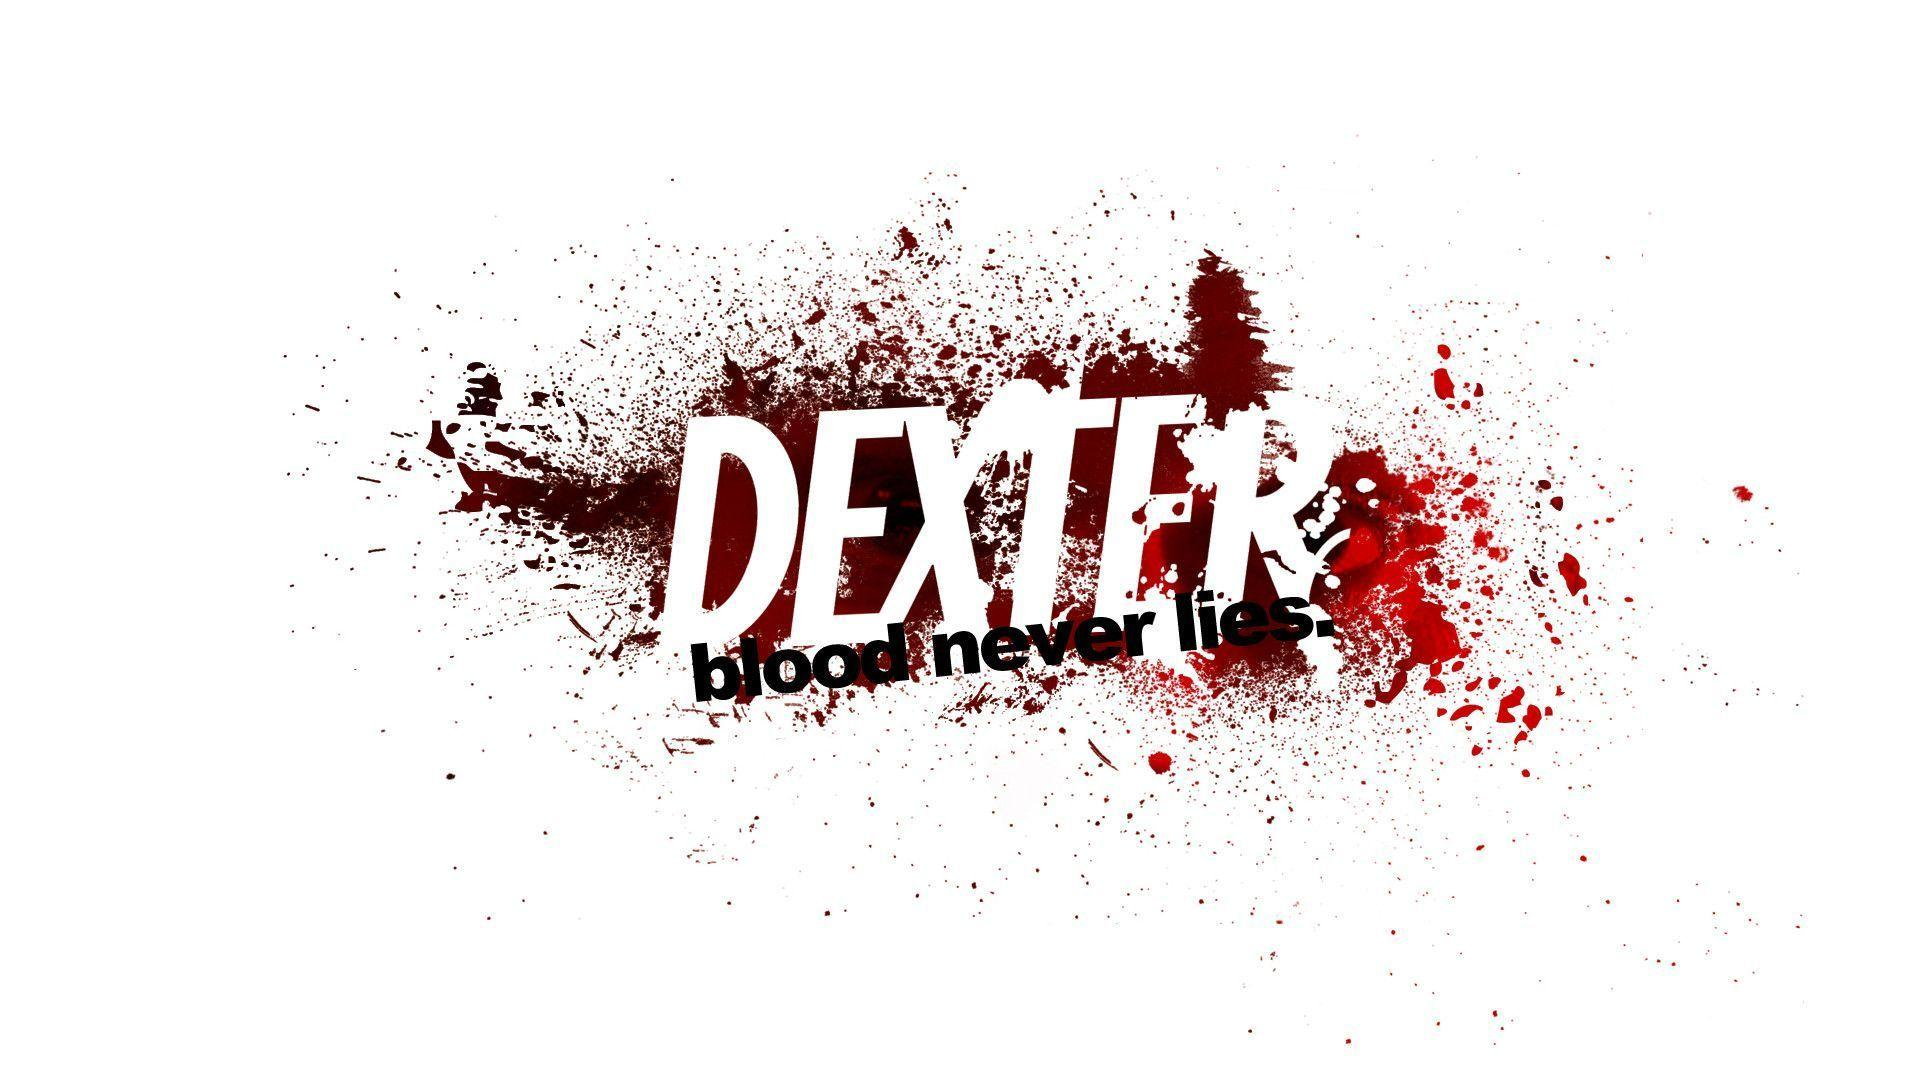 dexter wallpaper 1 by mttbtt87 on DeviantArt